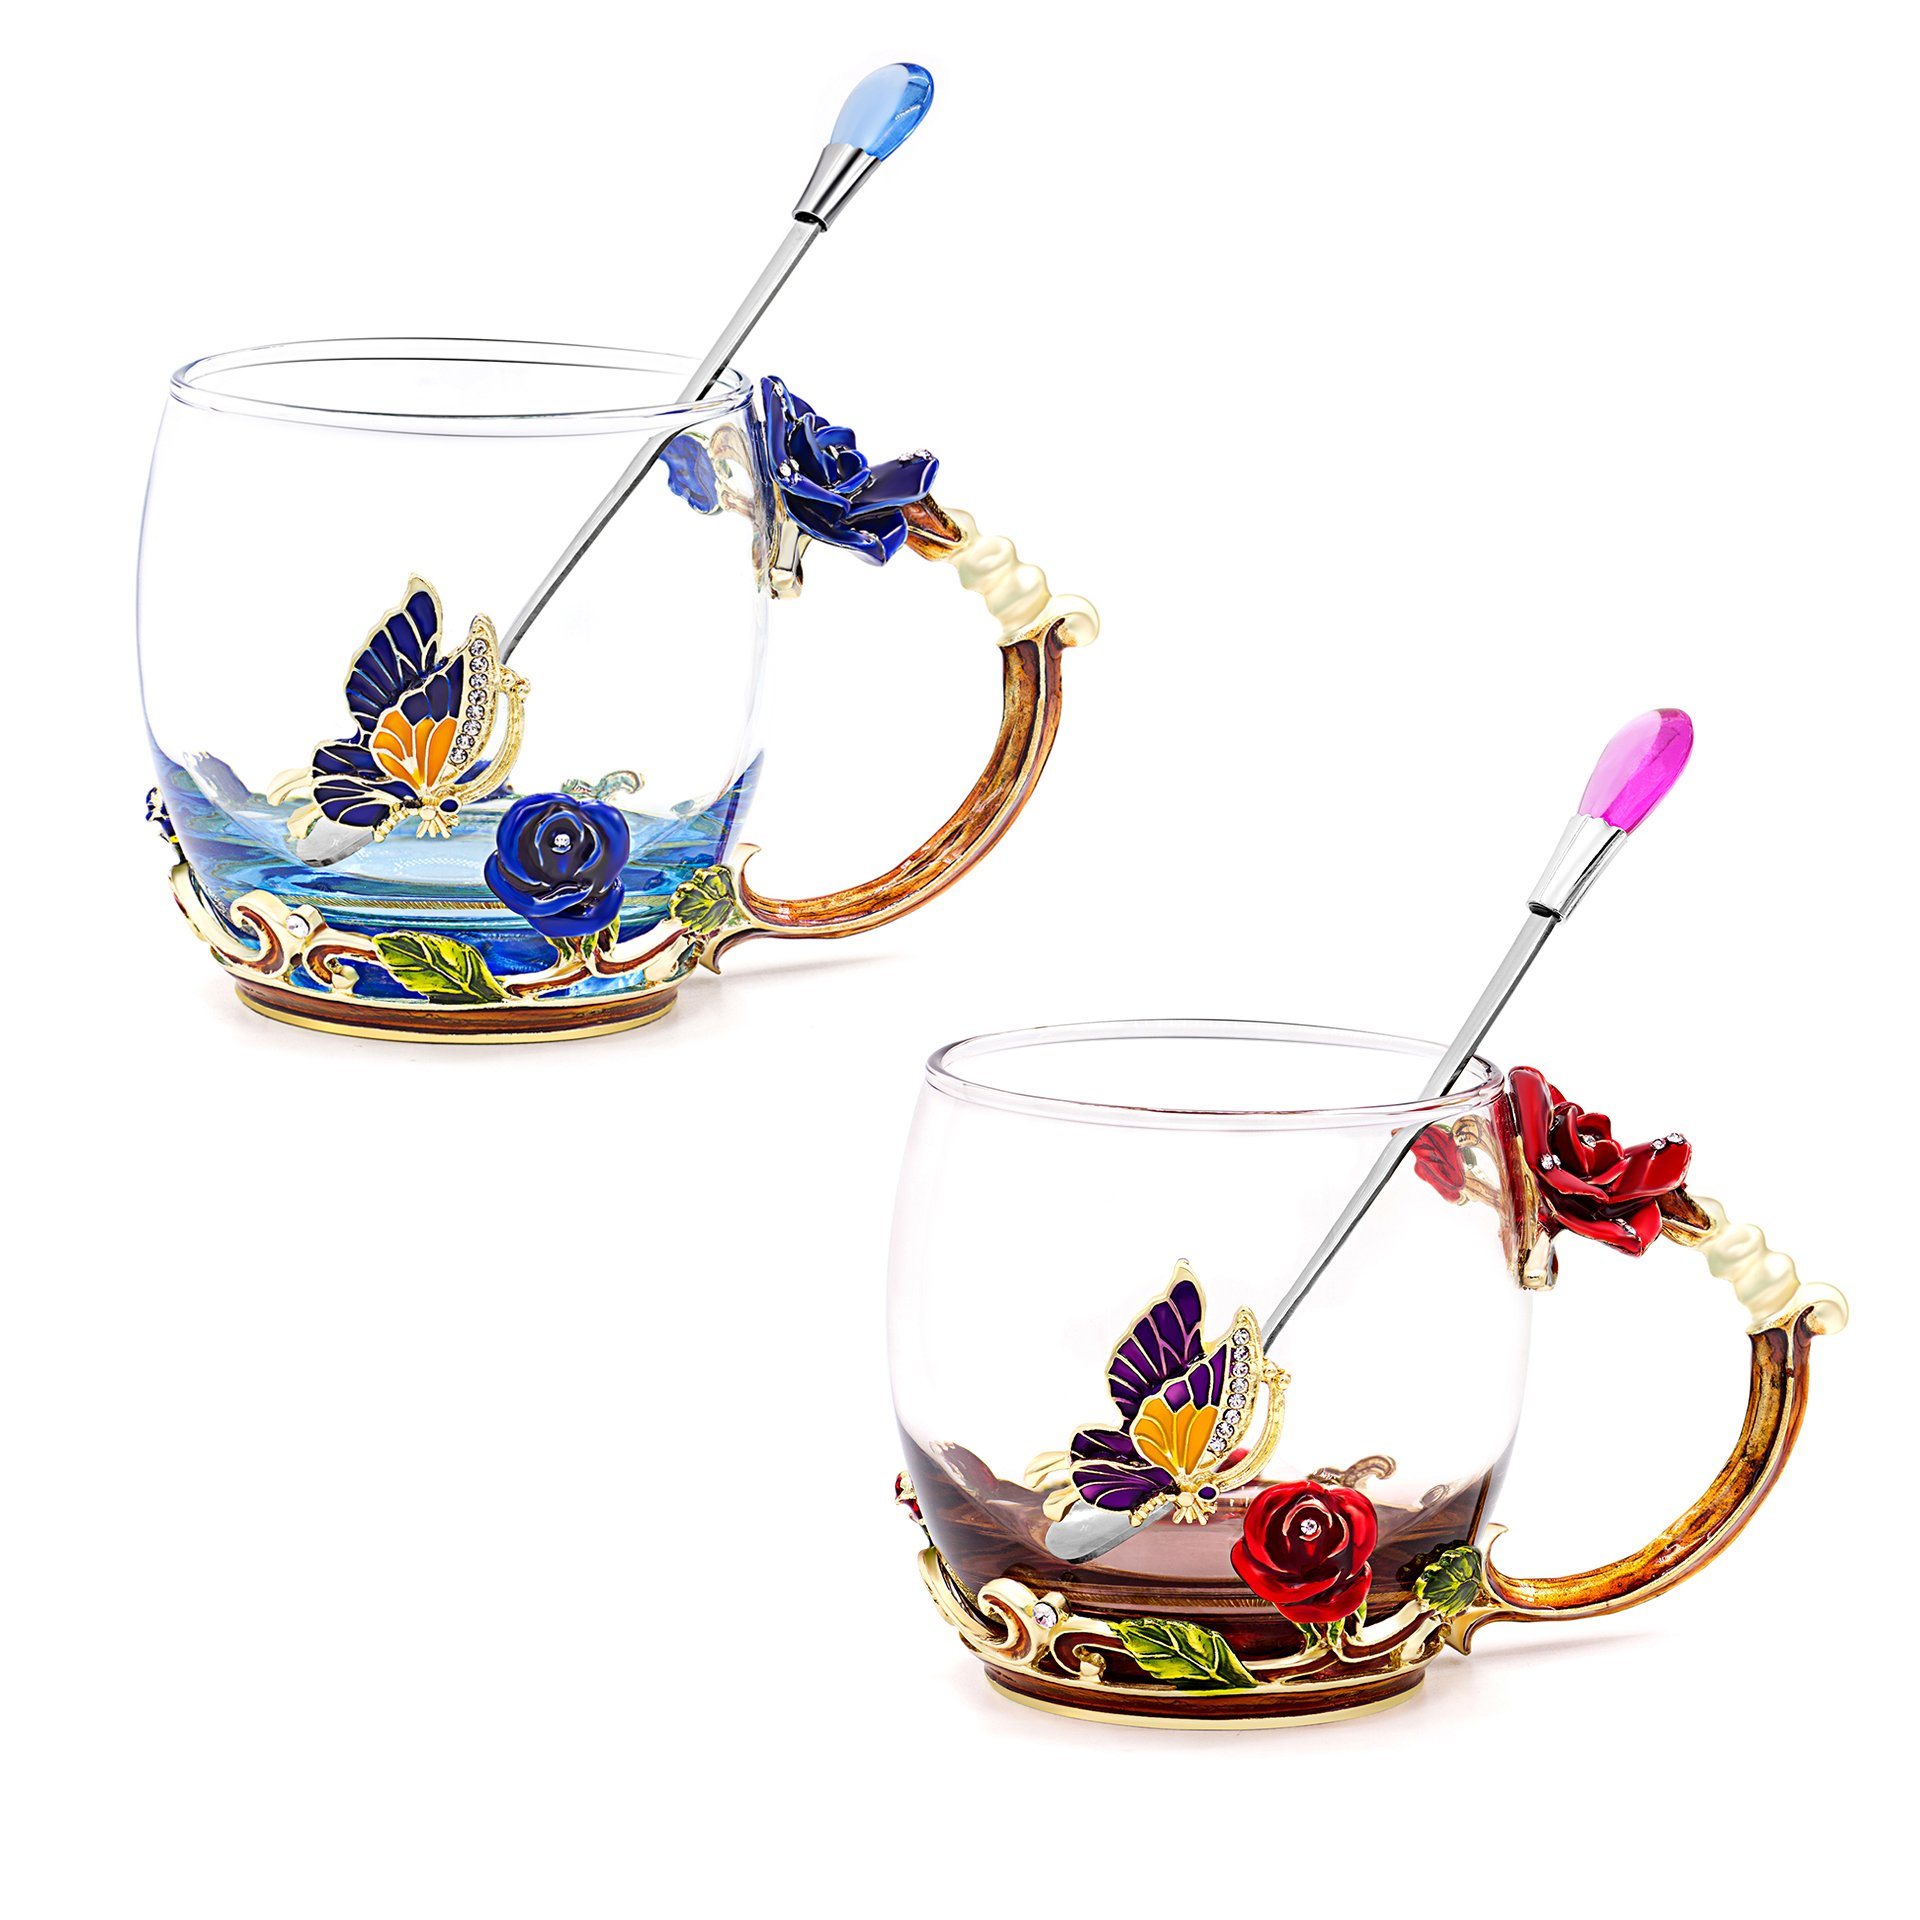 Daycindy Environmental Glass Cup Enamel Floral Tea Cups with Spoon Set (12oz, Rose Blue & Red)